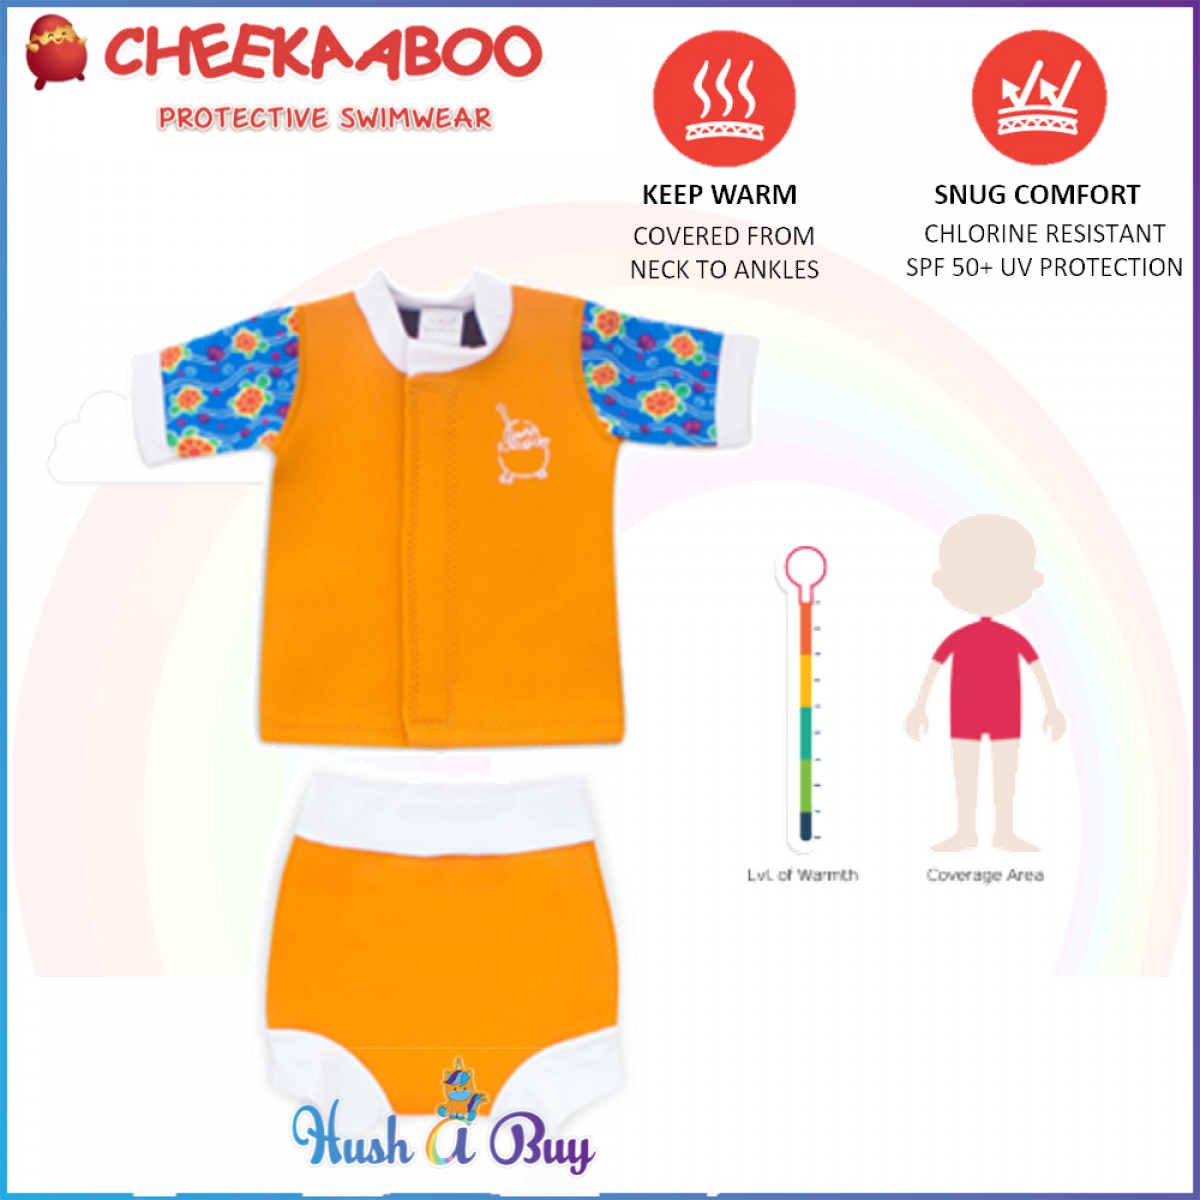 Cheekaaboo Huggiebabes Suit /Warmer/Swimming Suit/2 pieces- Orange (Sea Turtle) 6-30 months